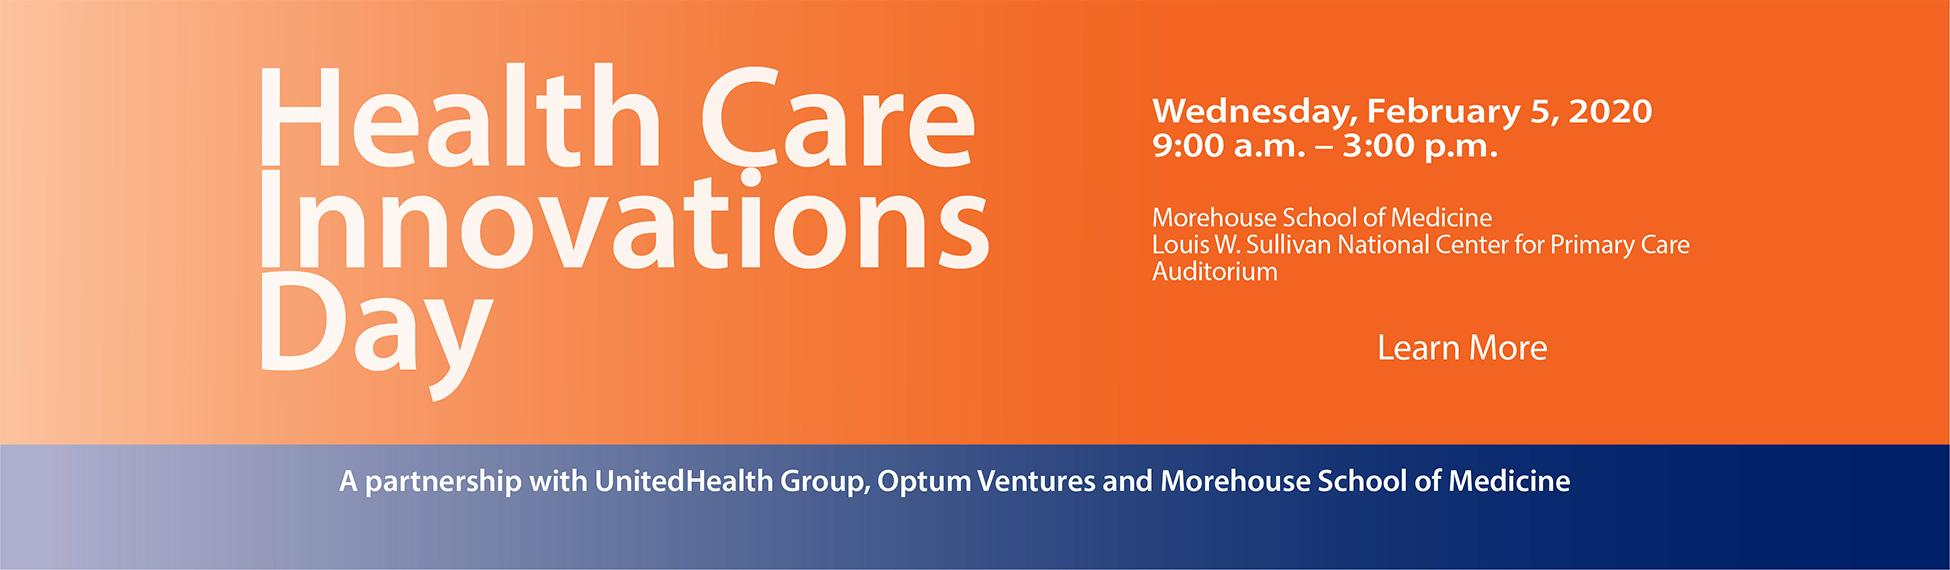 Health Care Innovations Day, Wednesday, February 5, 2020